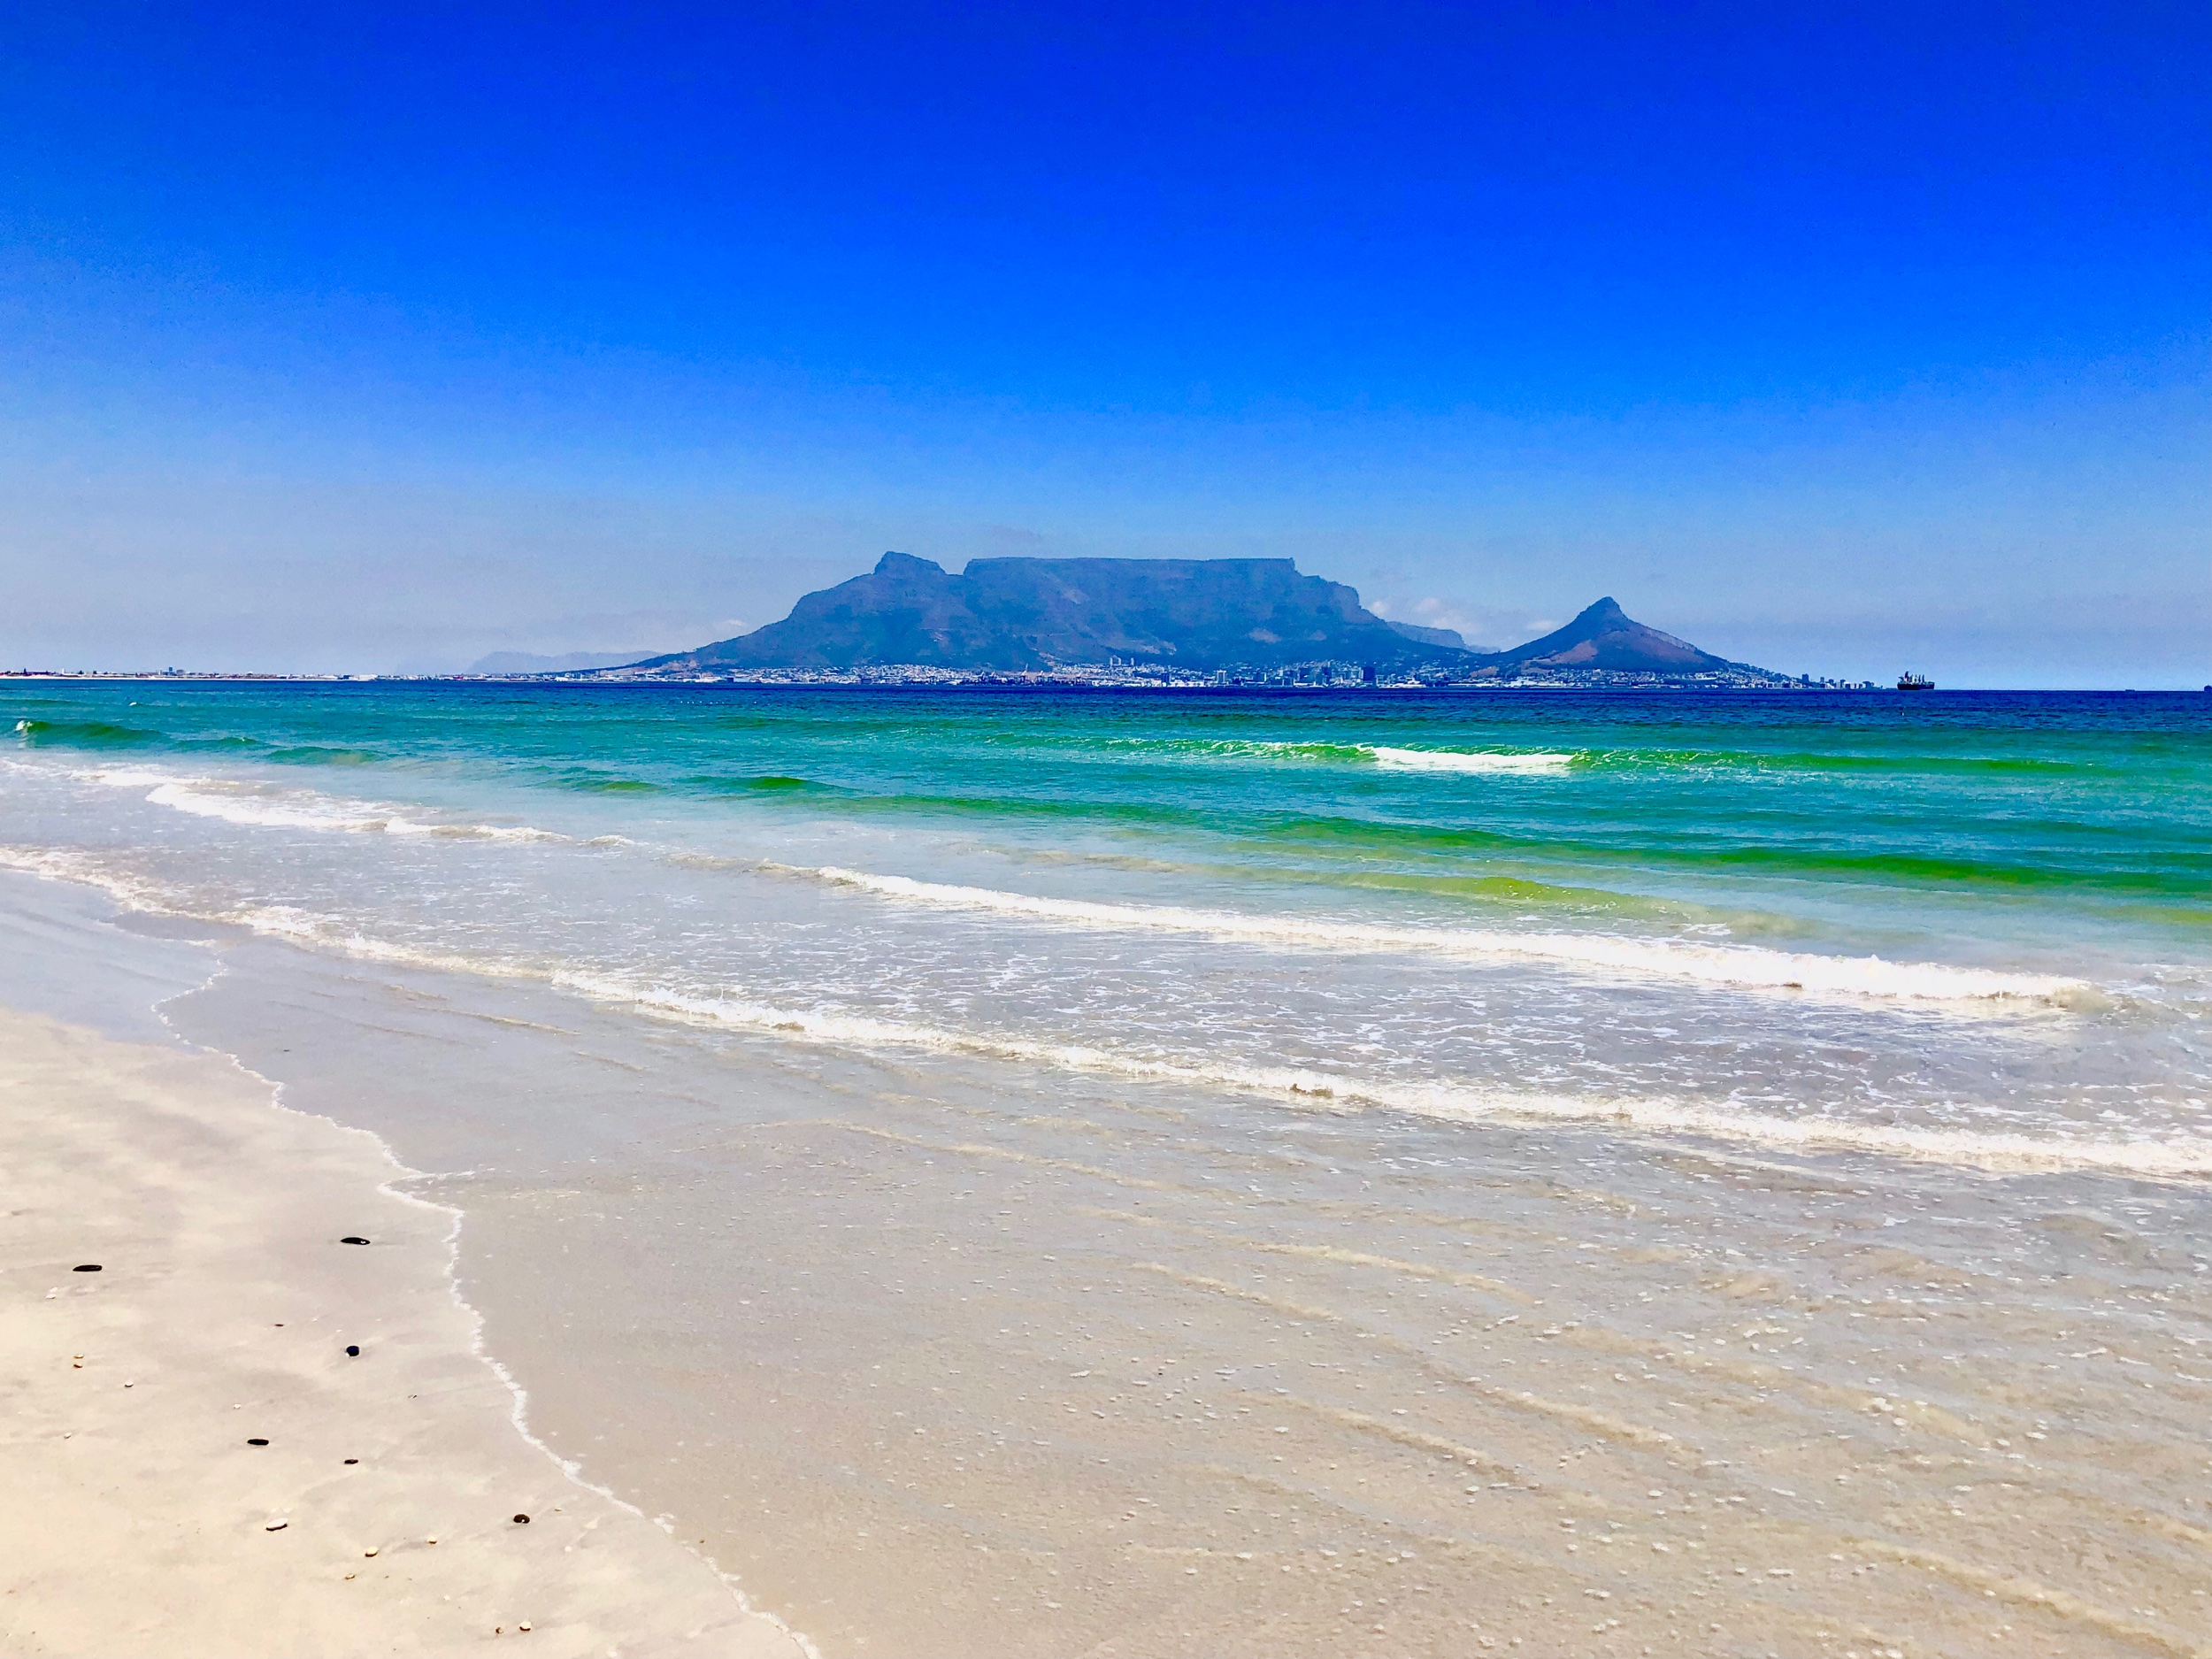 Table Mountain view from Dolphin Beach